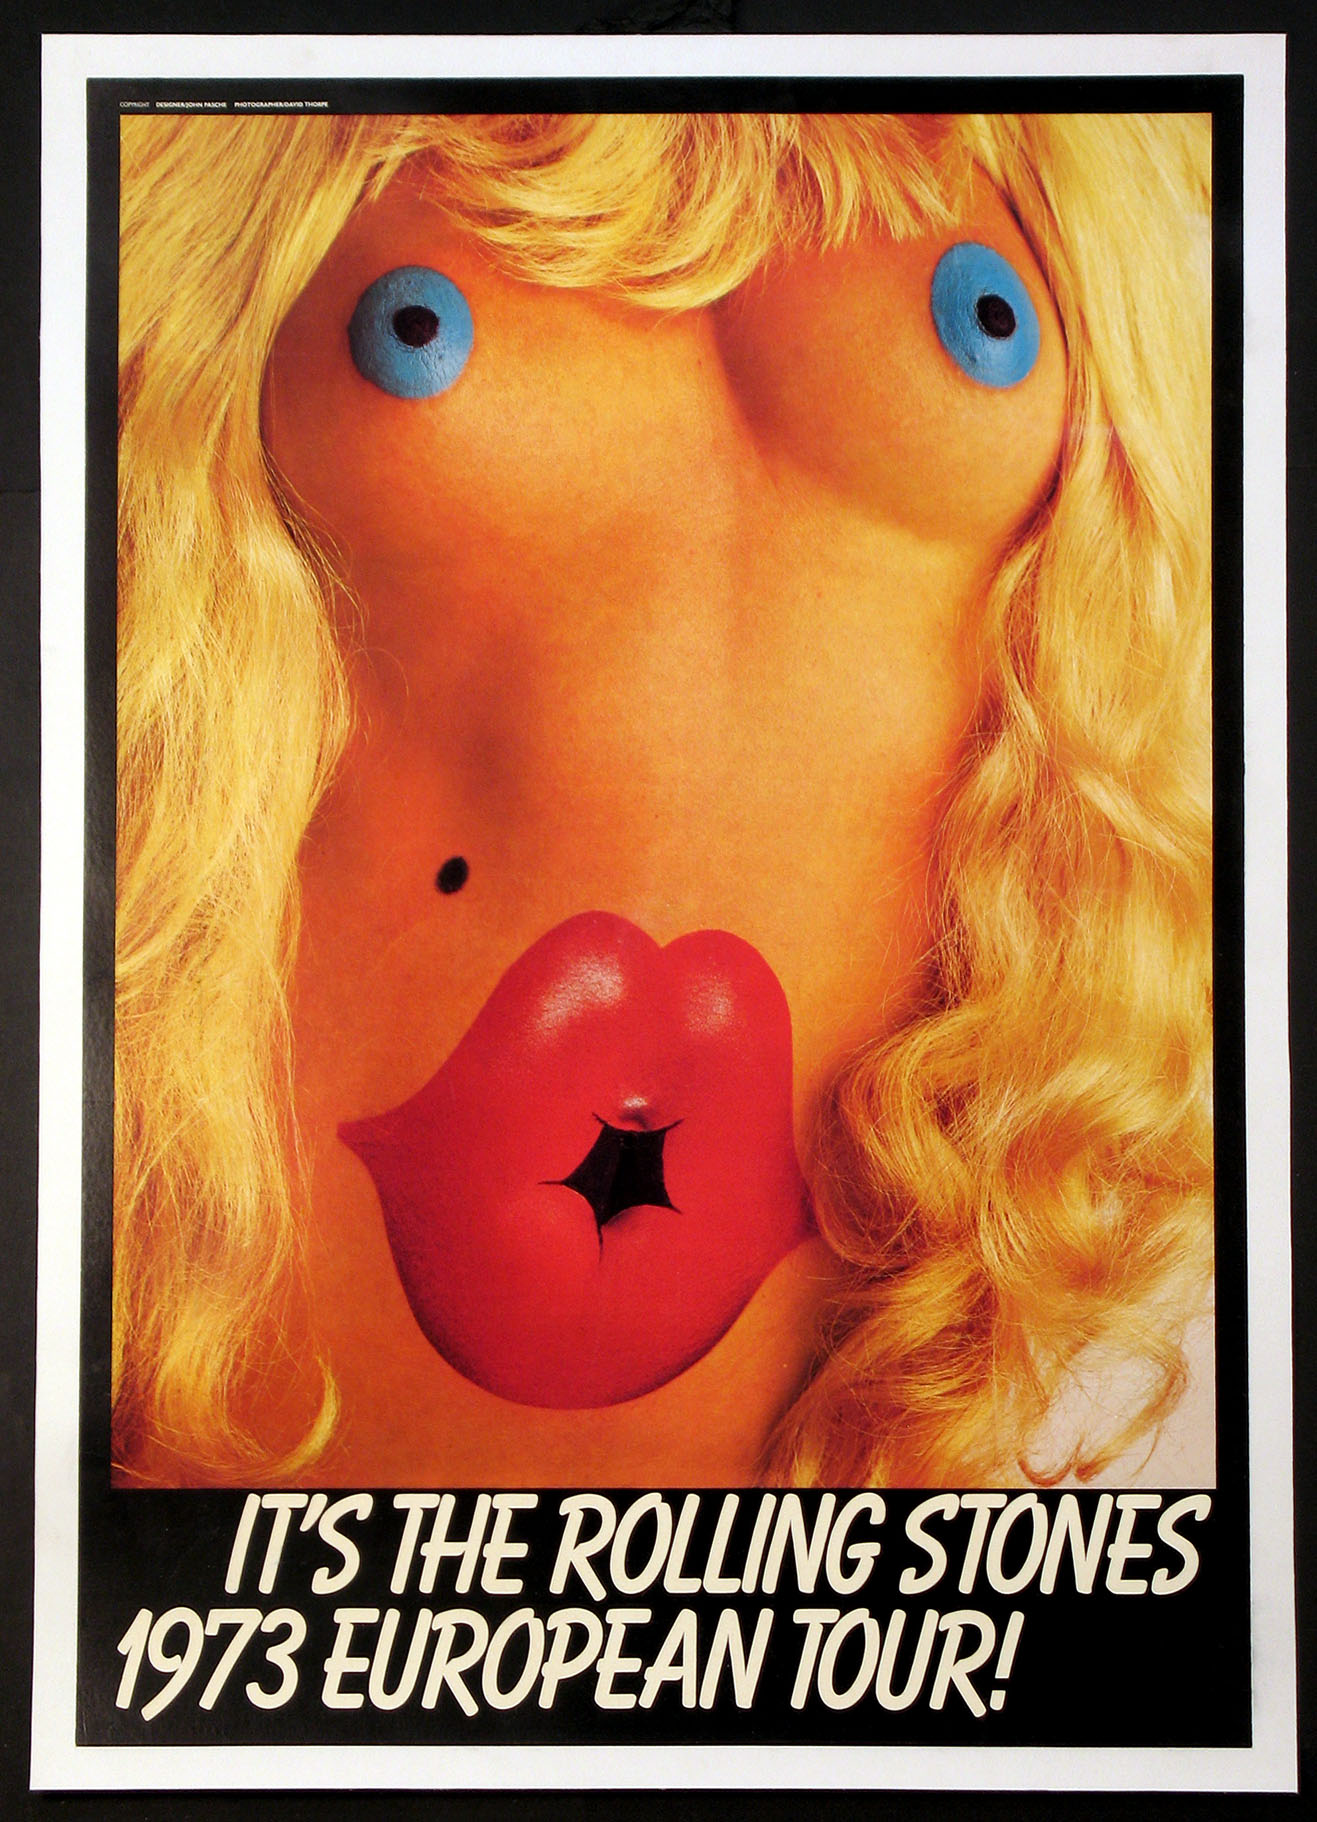 ROLLING STONES 1973 EUROPEAN TOUR POSTER @ FilmPosters.com